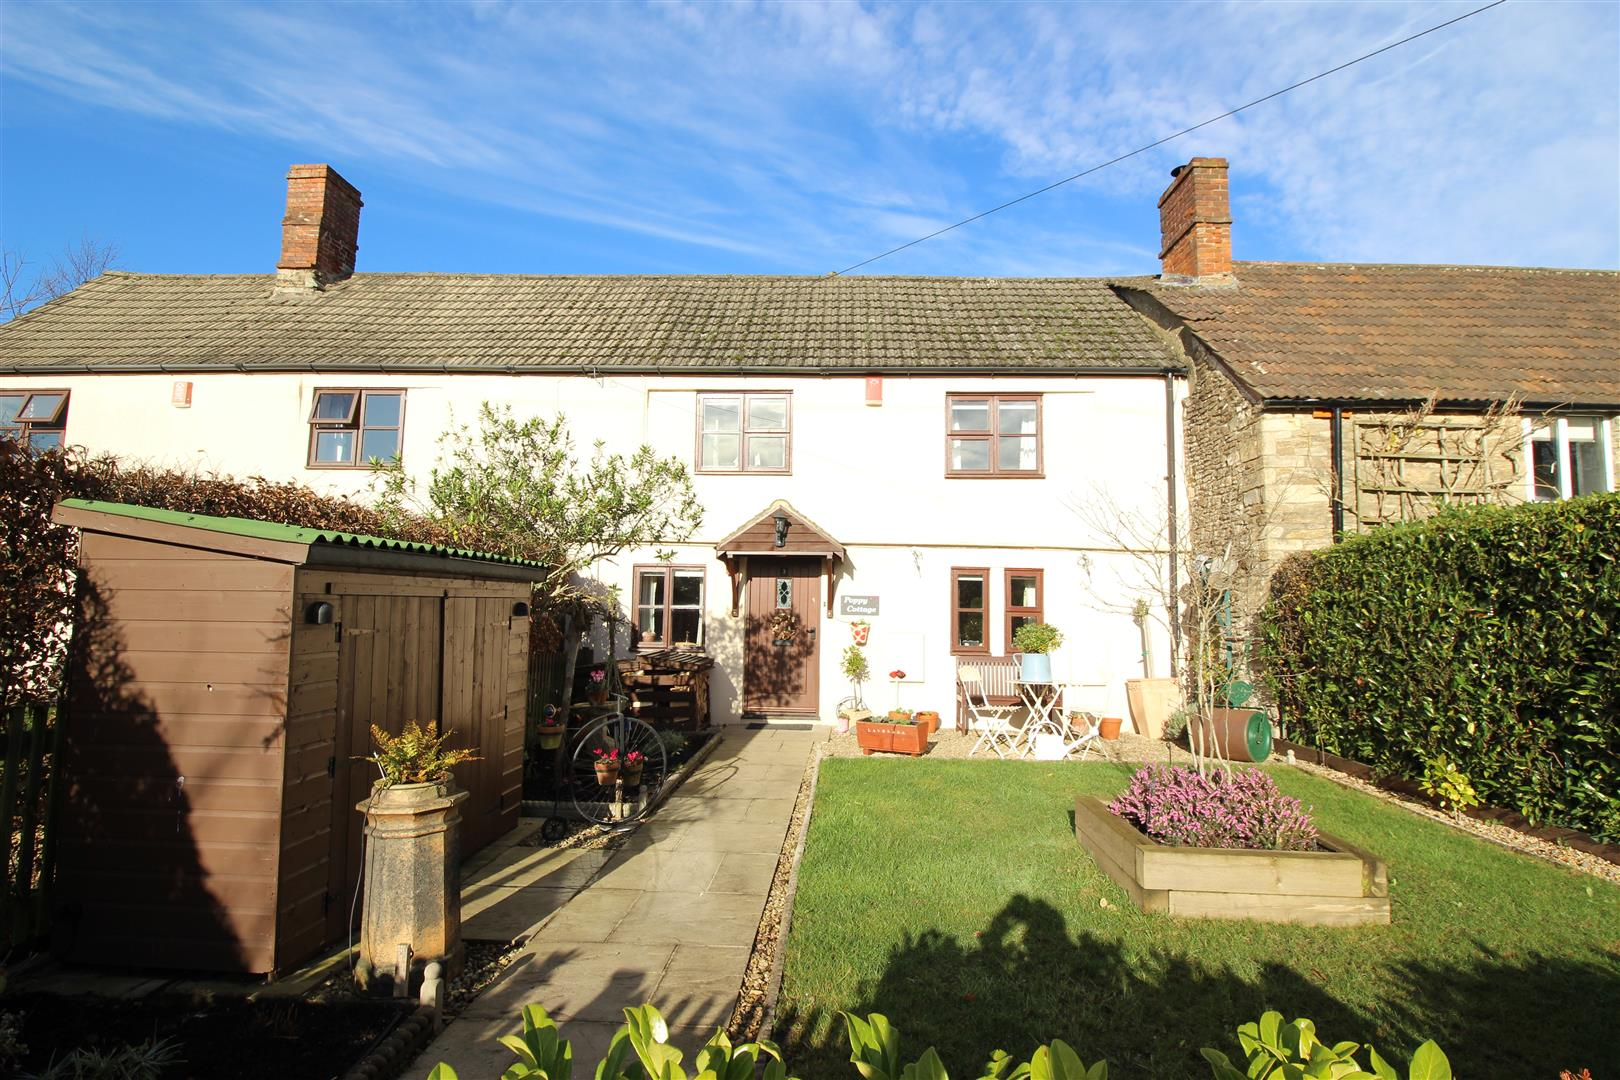 3 Bedrooms Terraced House for sale in Lower Common, Kington Langley